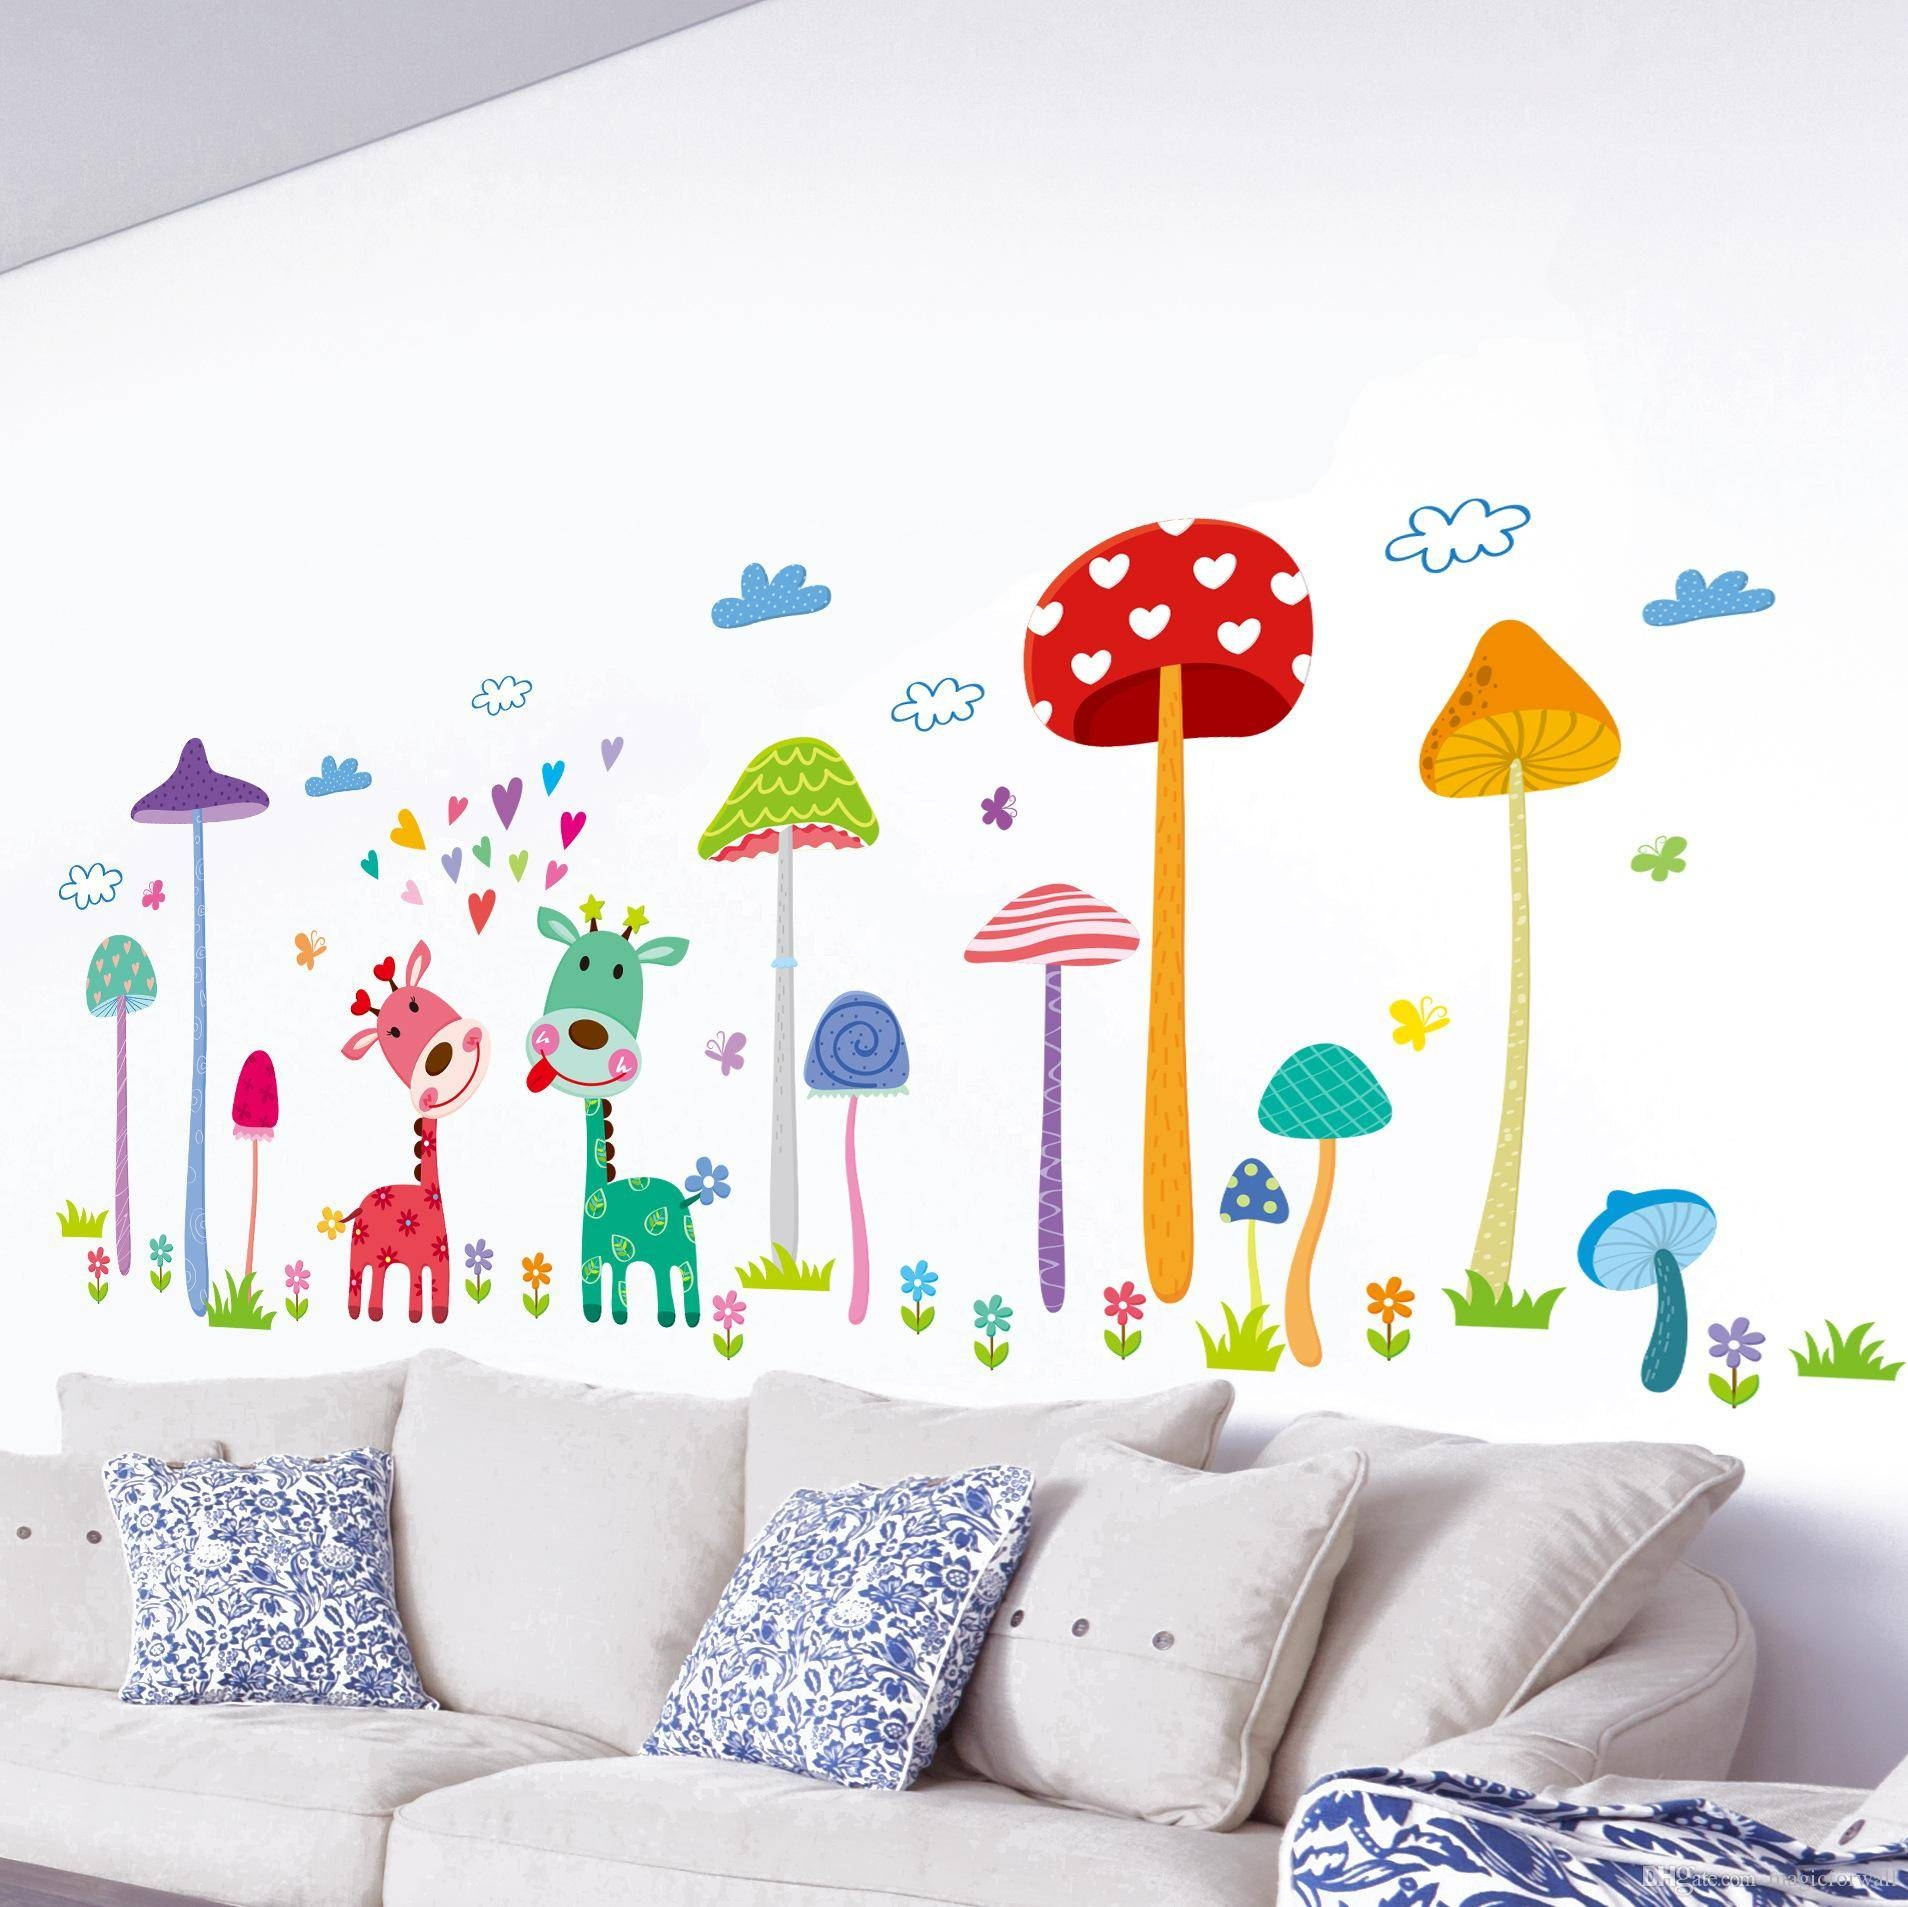 Forest Mushroom Deer Animals Home Wall Art Mural Decor Kids Babies Inside 2018 Animal Wall Art (View 14 of 25)